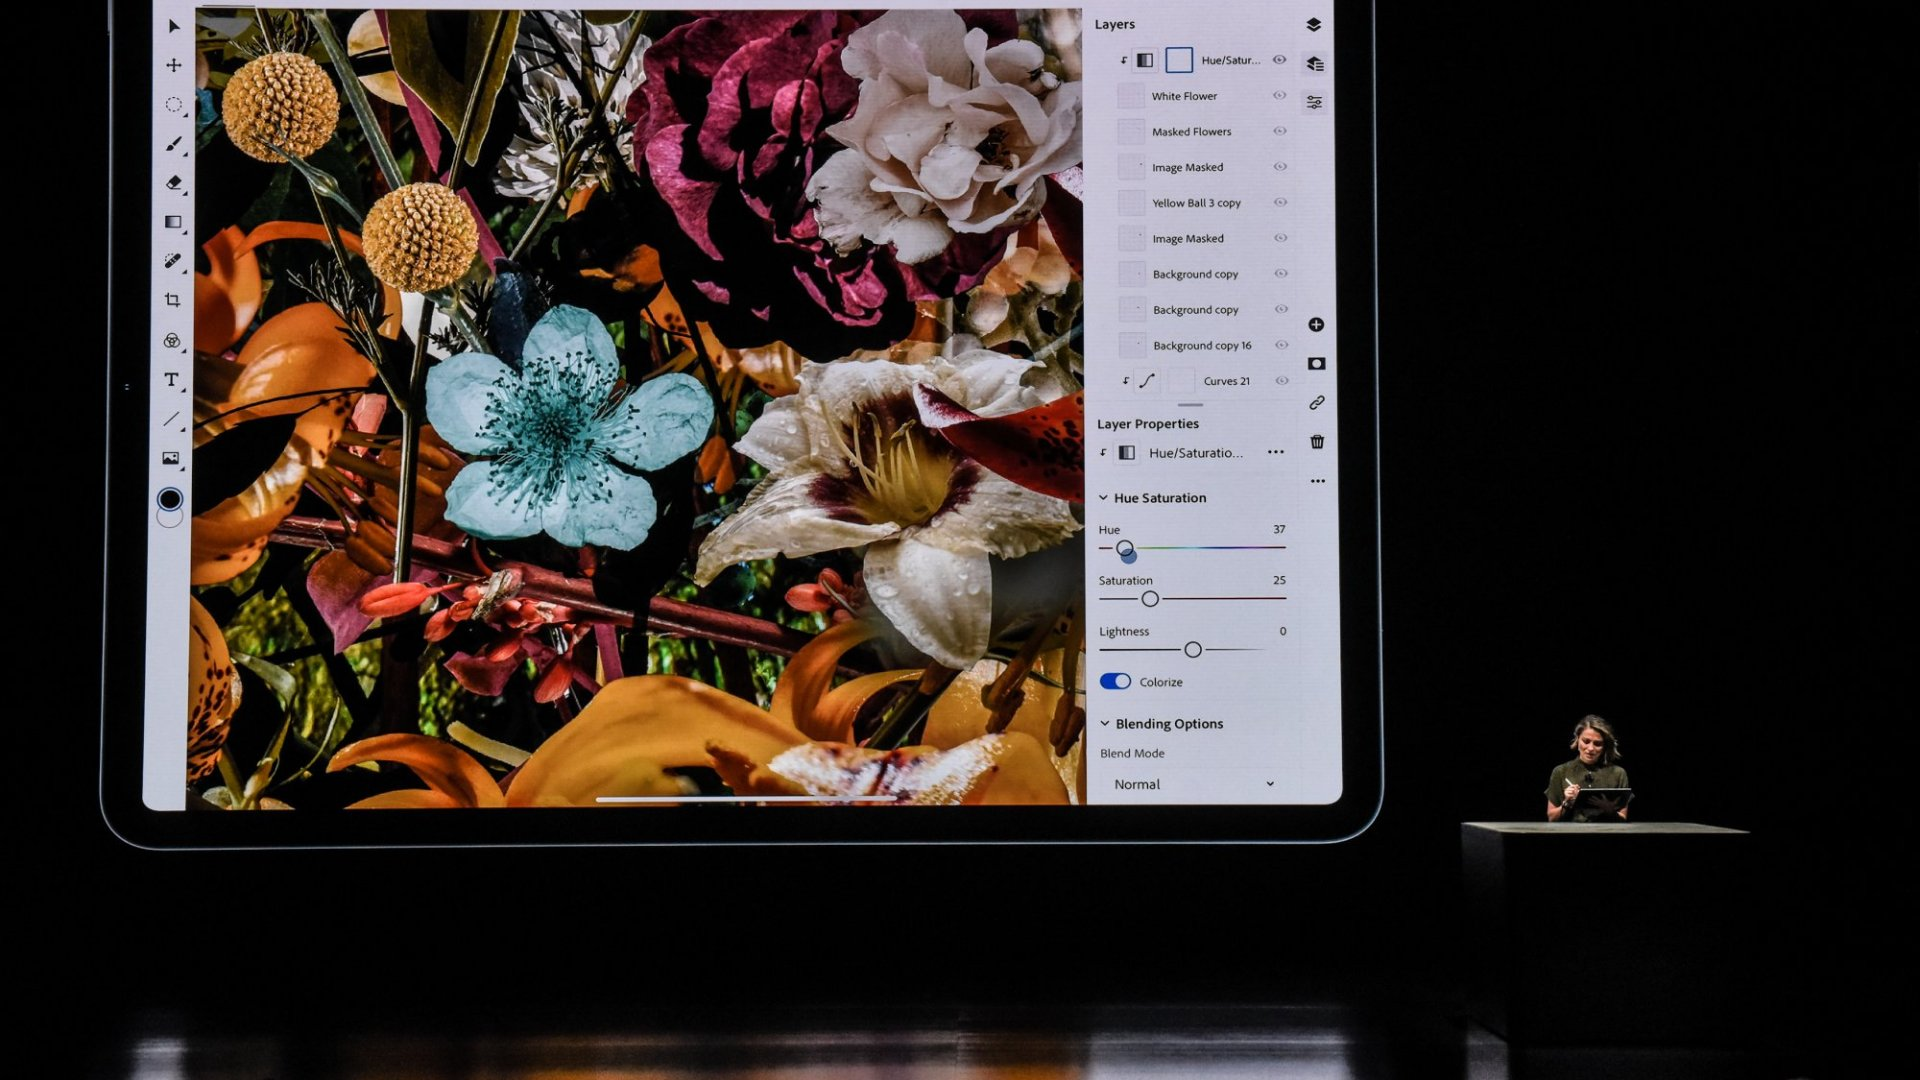 Finally, Adobe Released a Photoshop App for the iPad--and It's a Big Milestone